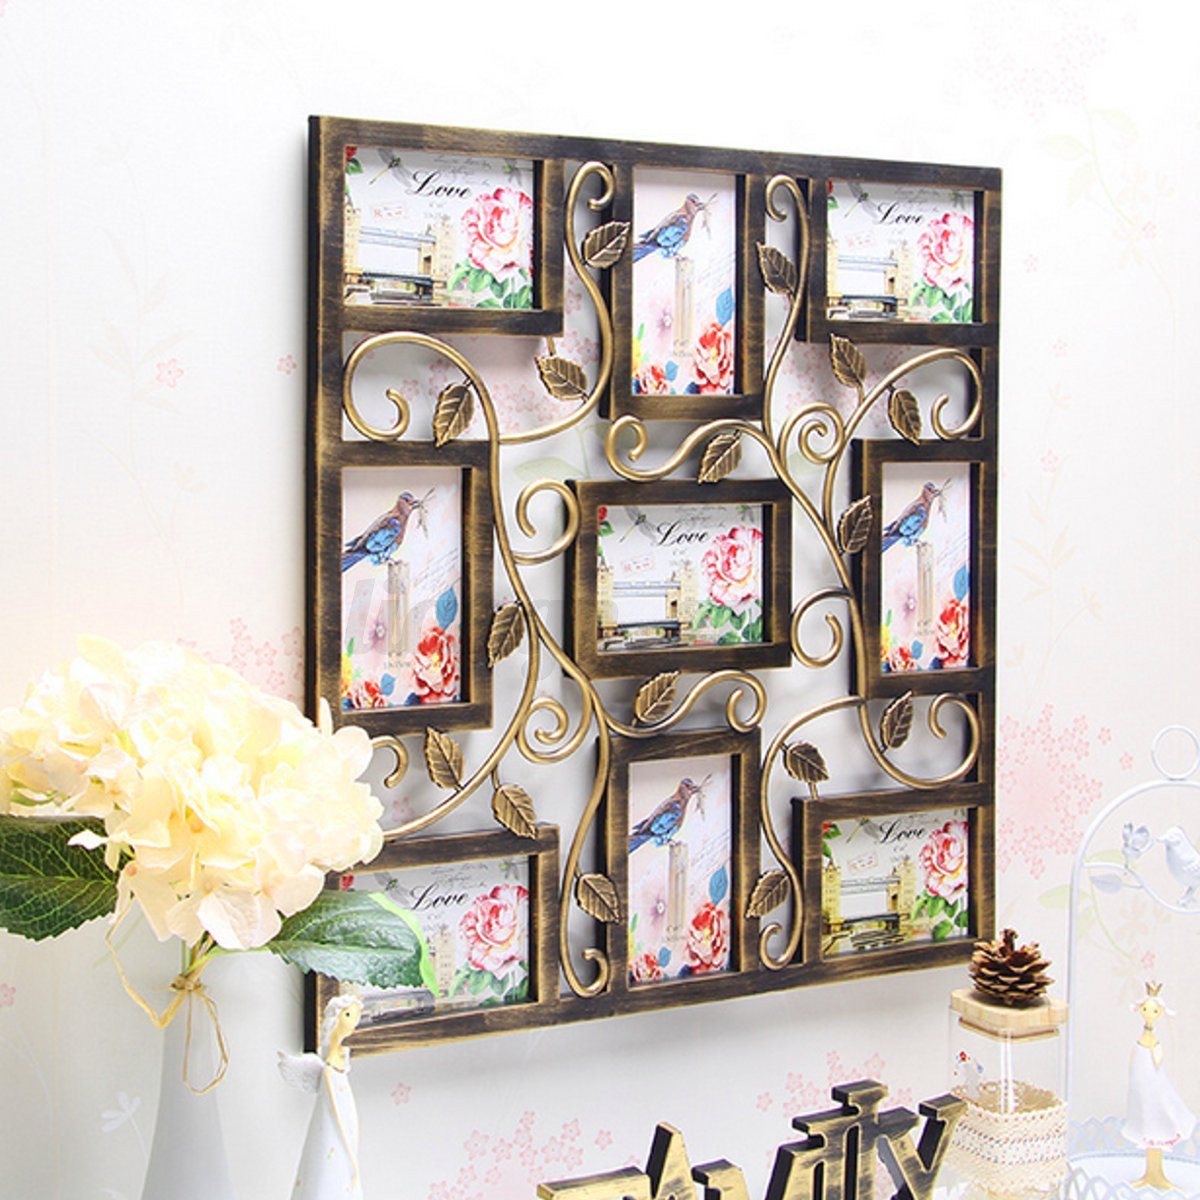 8 types 6 39 39 collage multi photo frames picture display wall hanging decor gifts. Black Bedroom Furniture Sets. Home Design Ideas